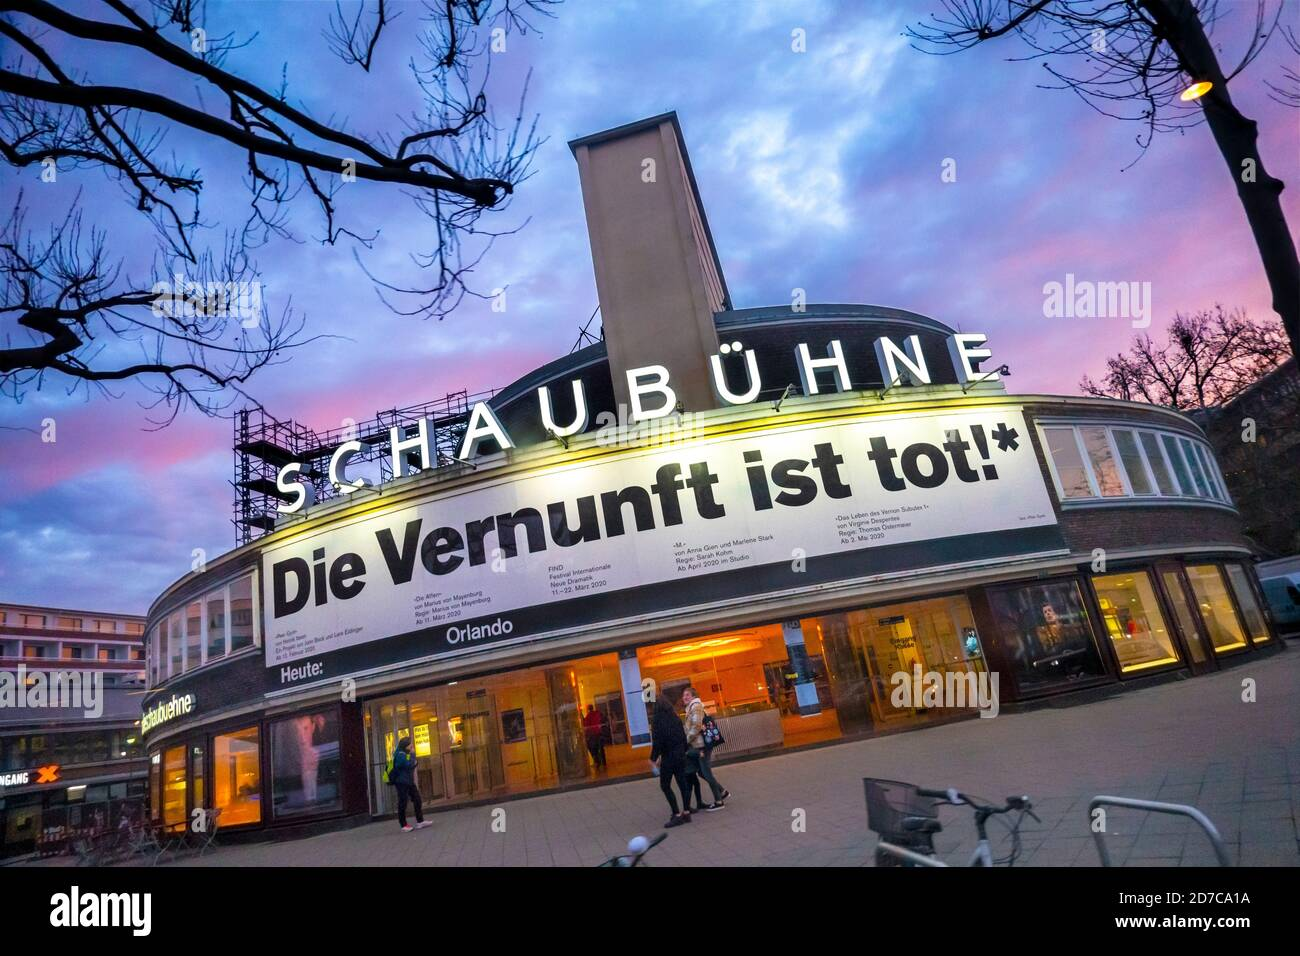 https://c7.alamy.com/comp/2D7CA1A/schaubhne-am-lehniner-platz-famous-schaubuhne-theater-in-berlin-with-banner-die-vernunft-ist-tot-reason-or-common-sense-is-dead-2D7CA1A.jpg